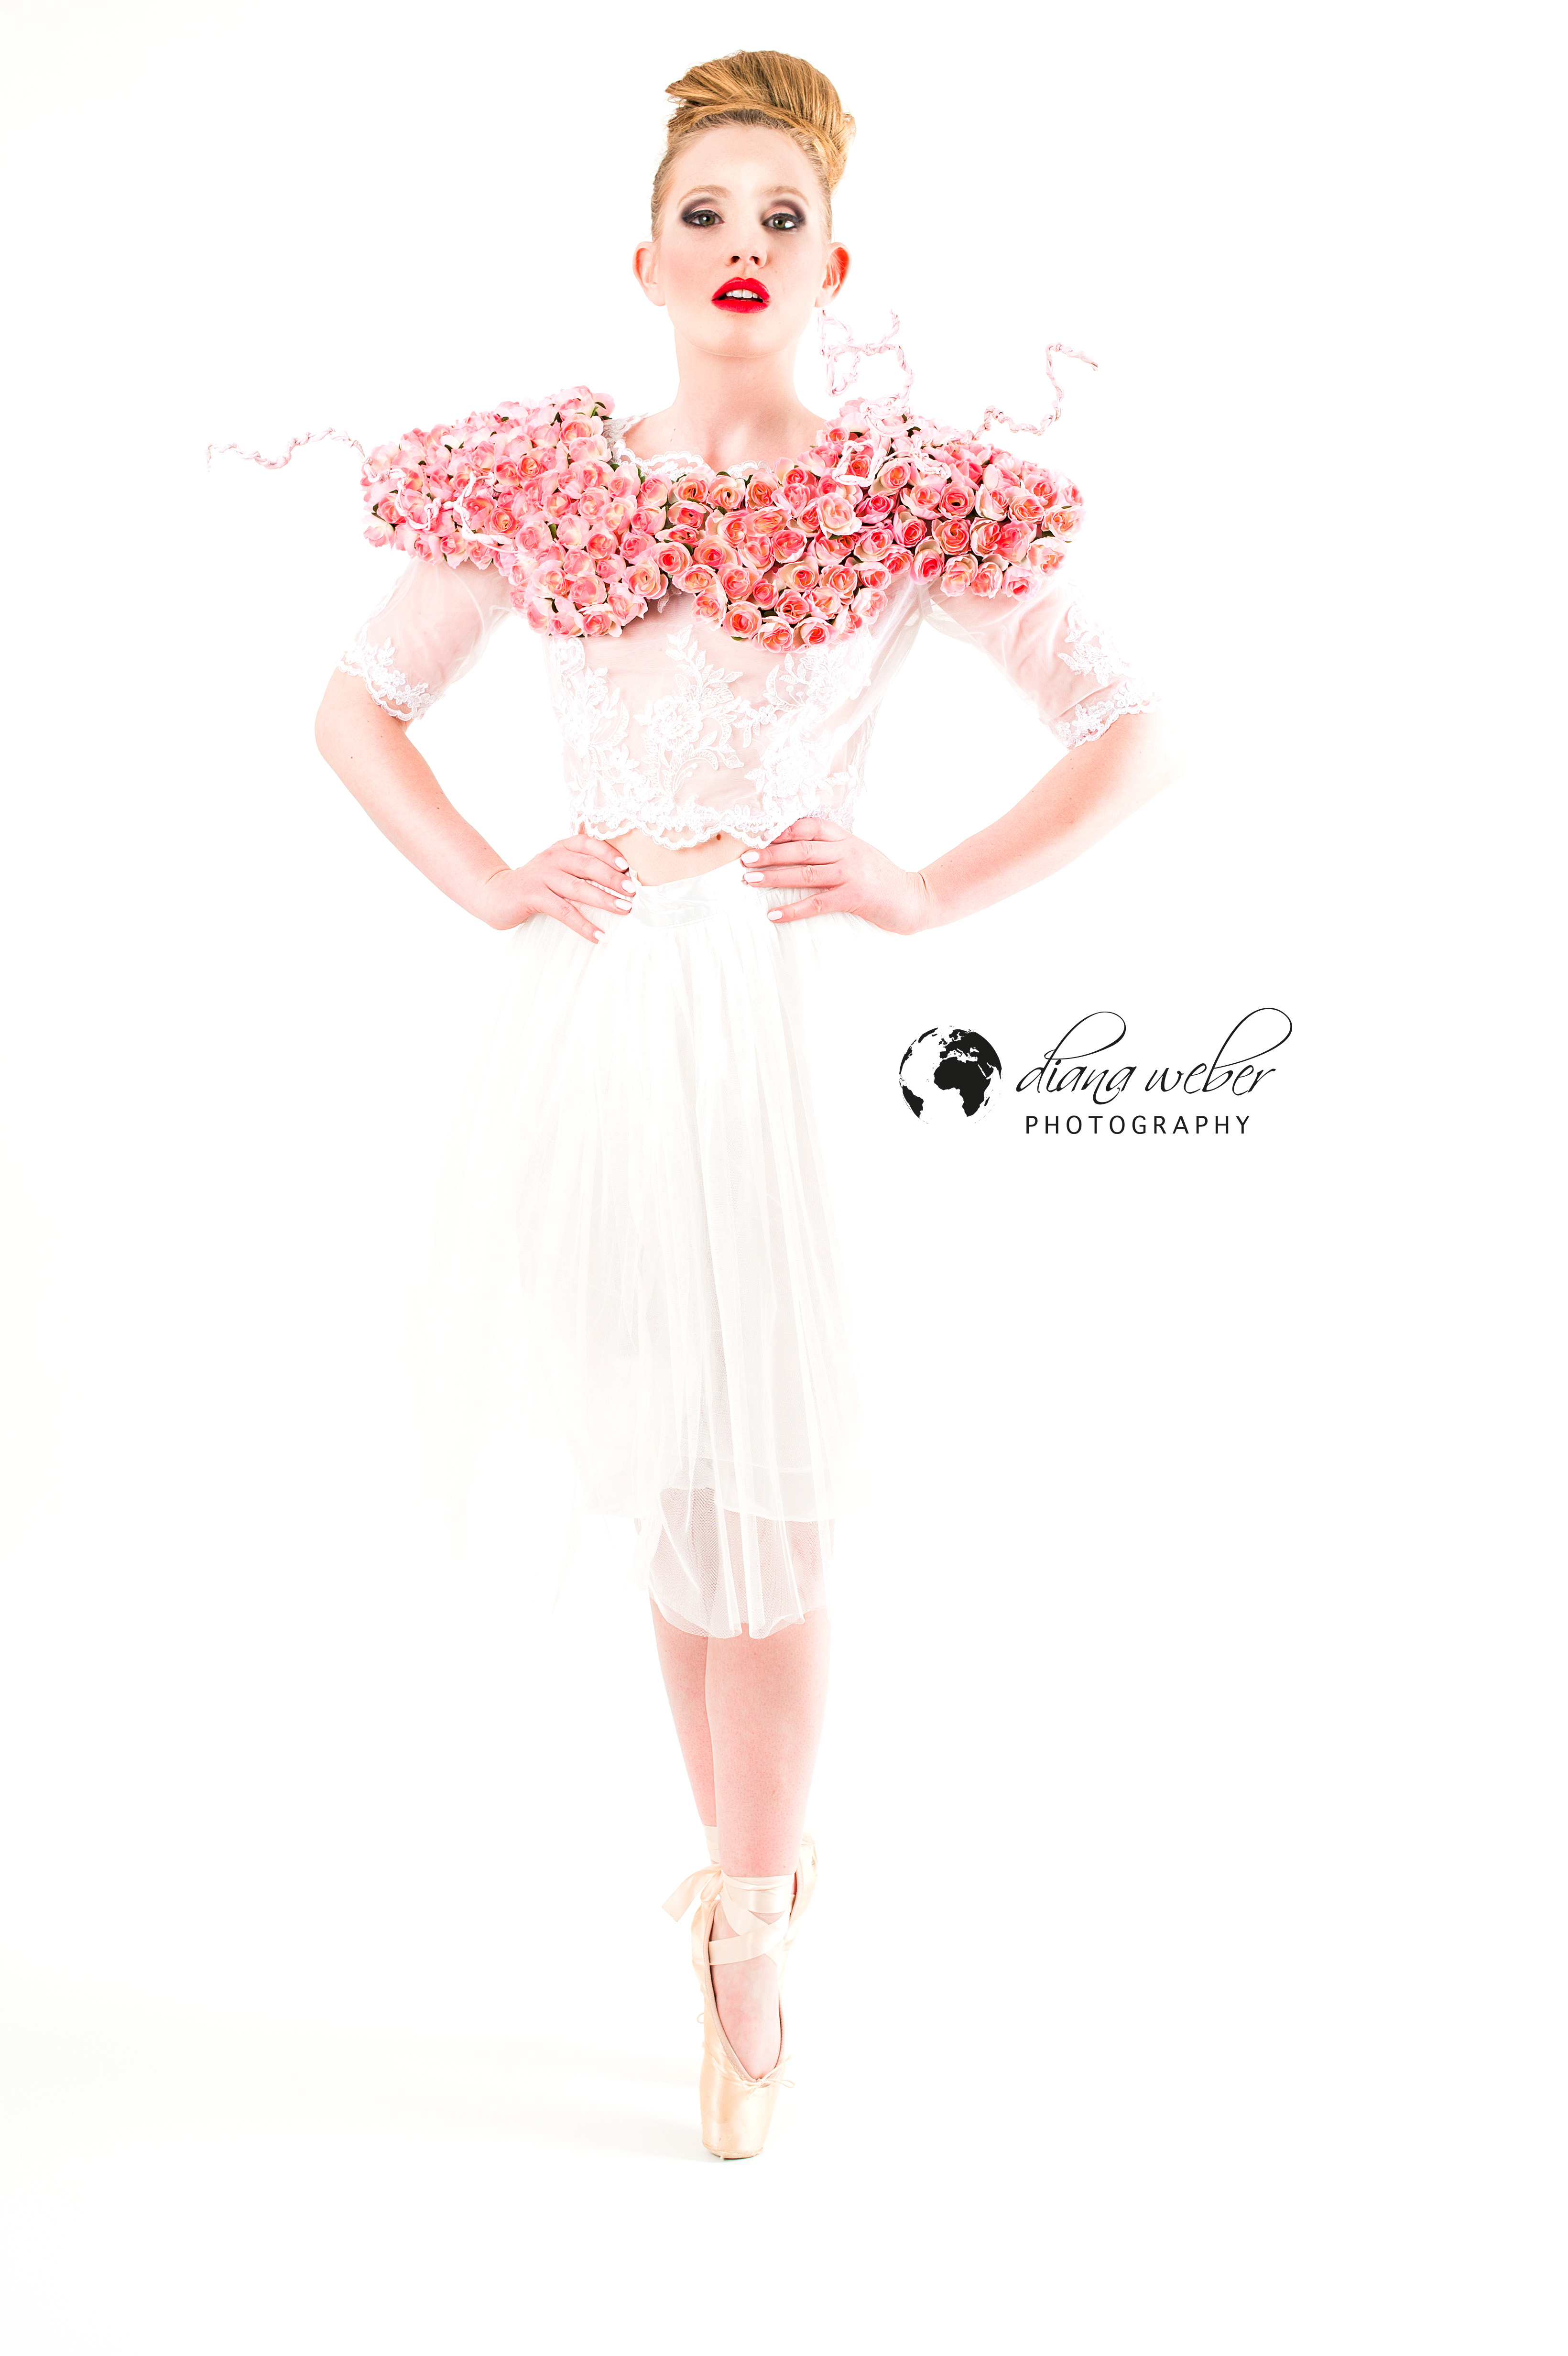 Flower in the fashion